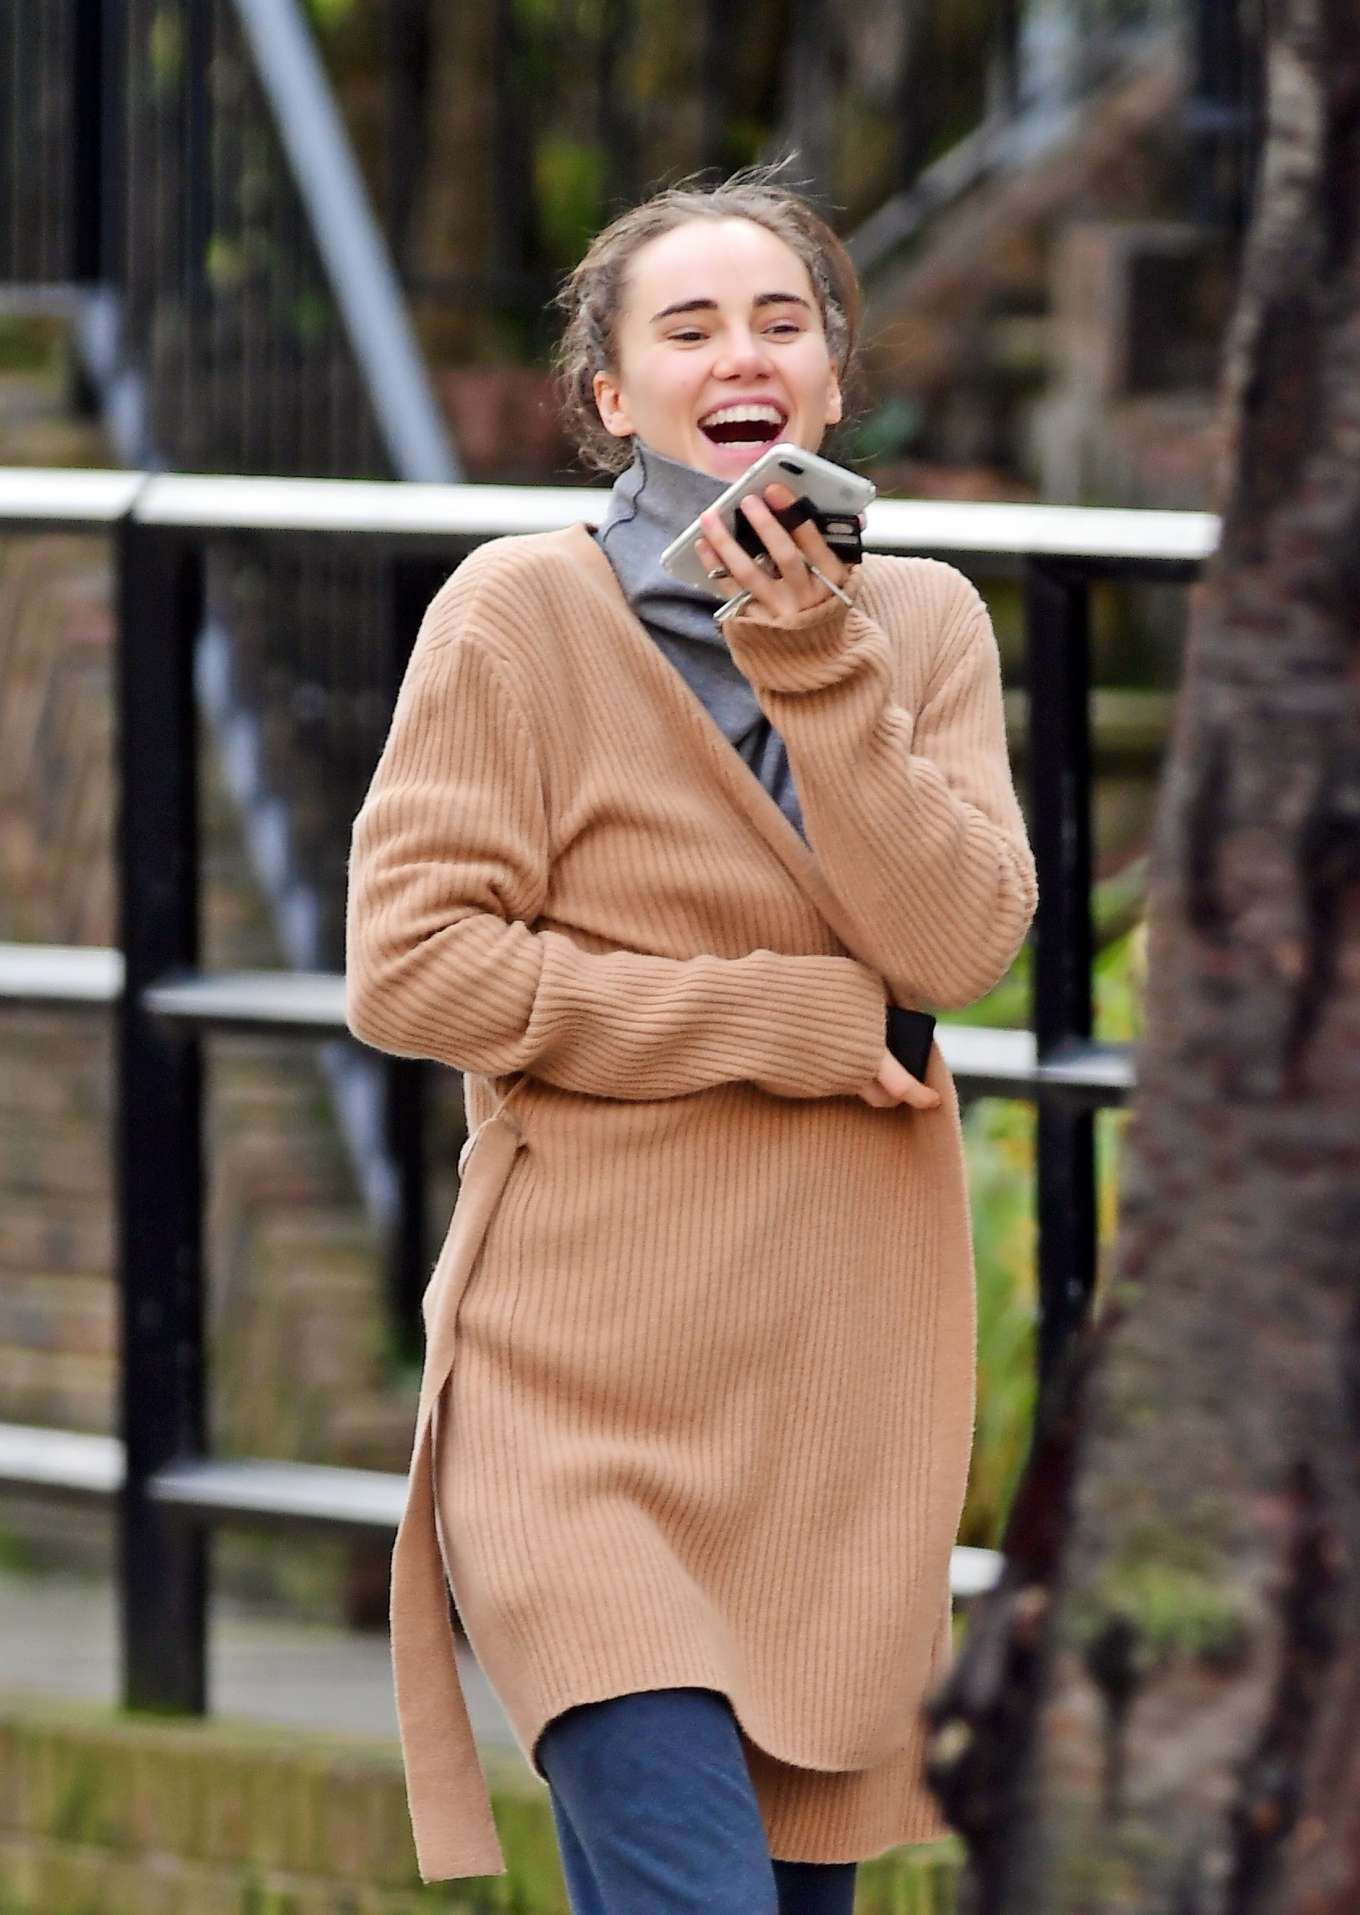 Suki Waterhouse in Brown Sweater - Out in London